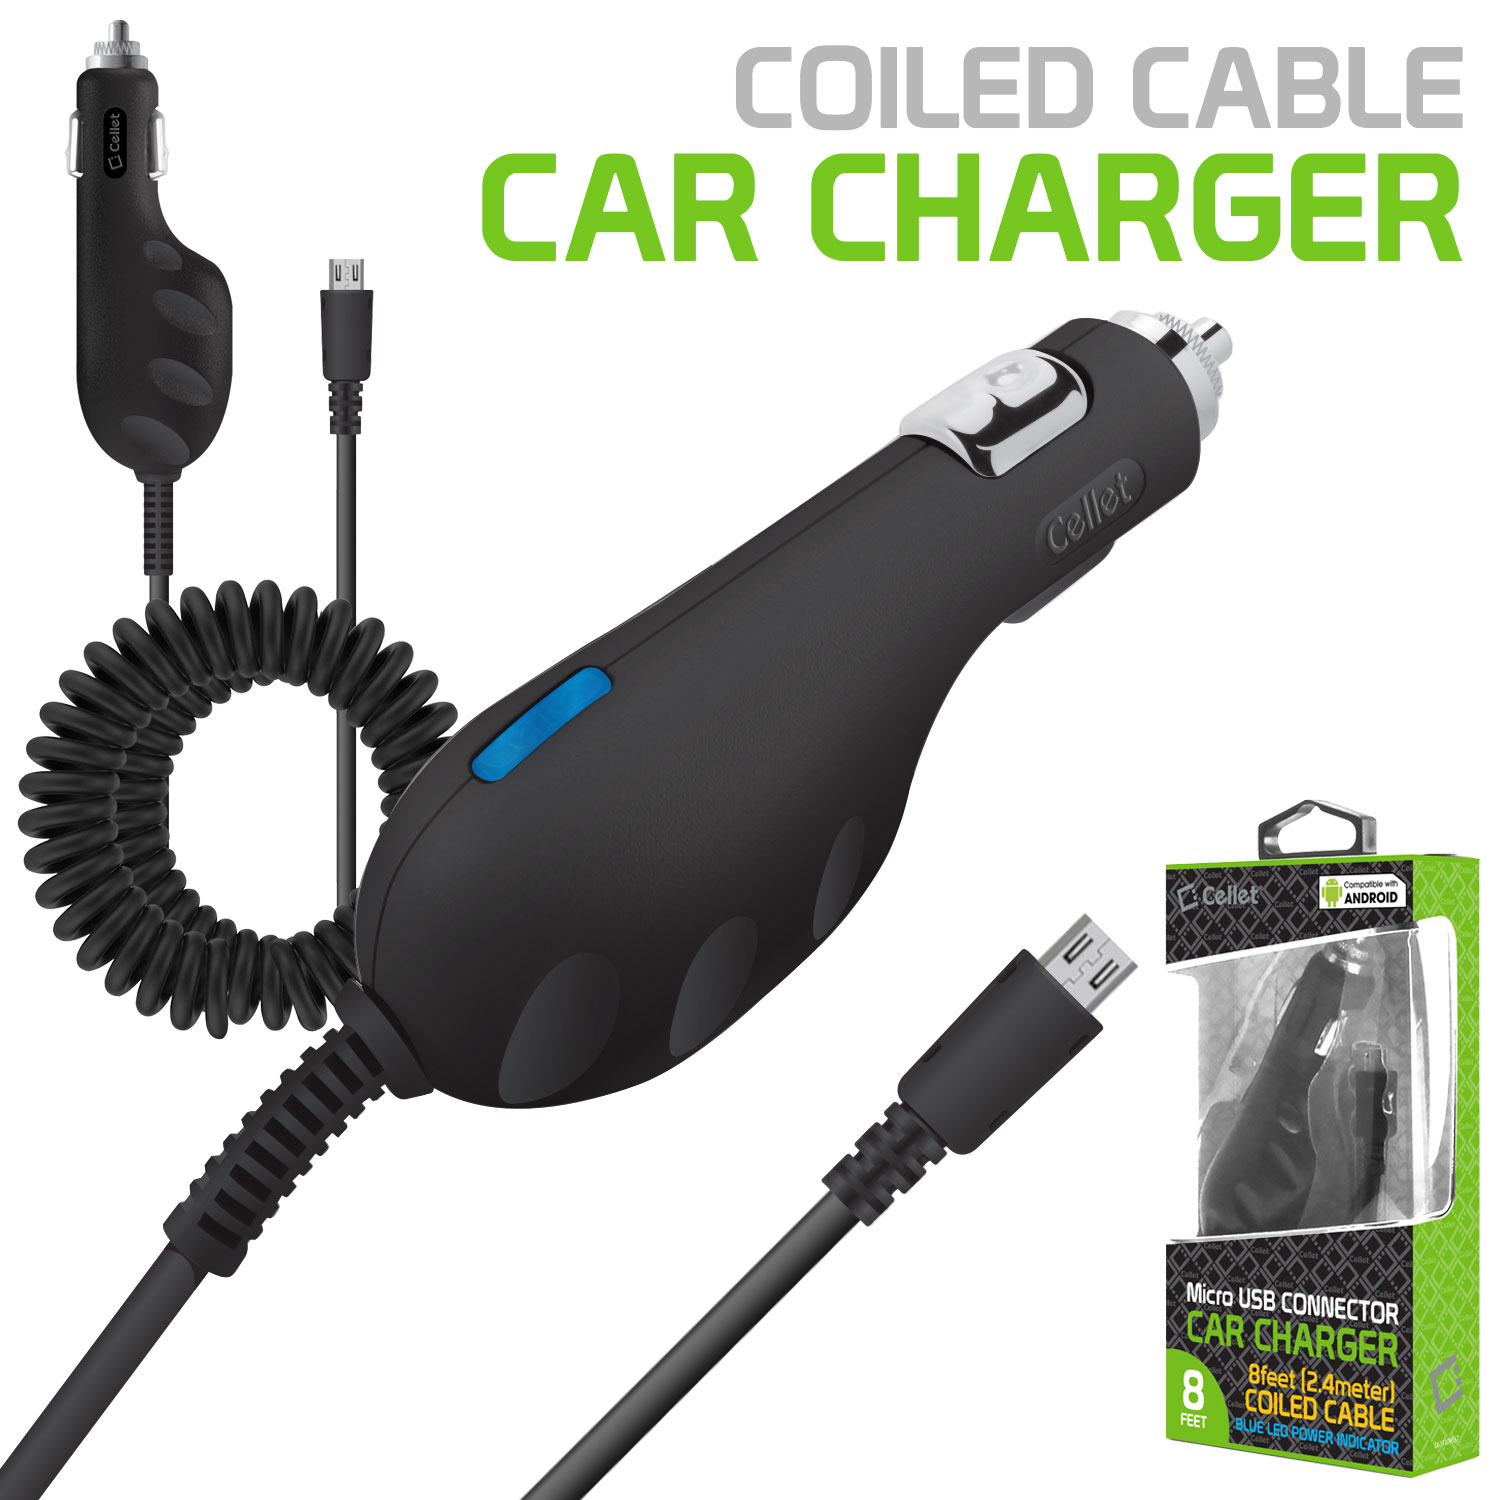 Cellet microUSB Vehicle Car Super Charger for Most Recent Android Phones